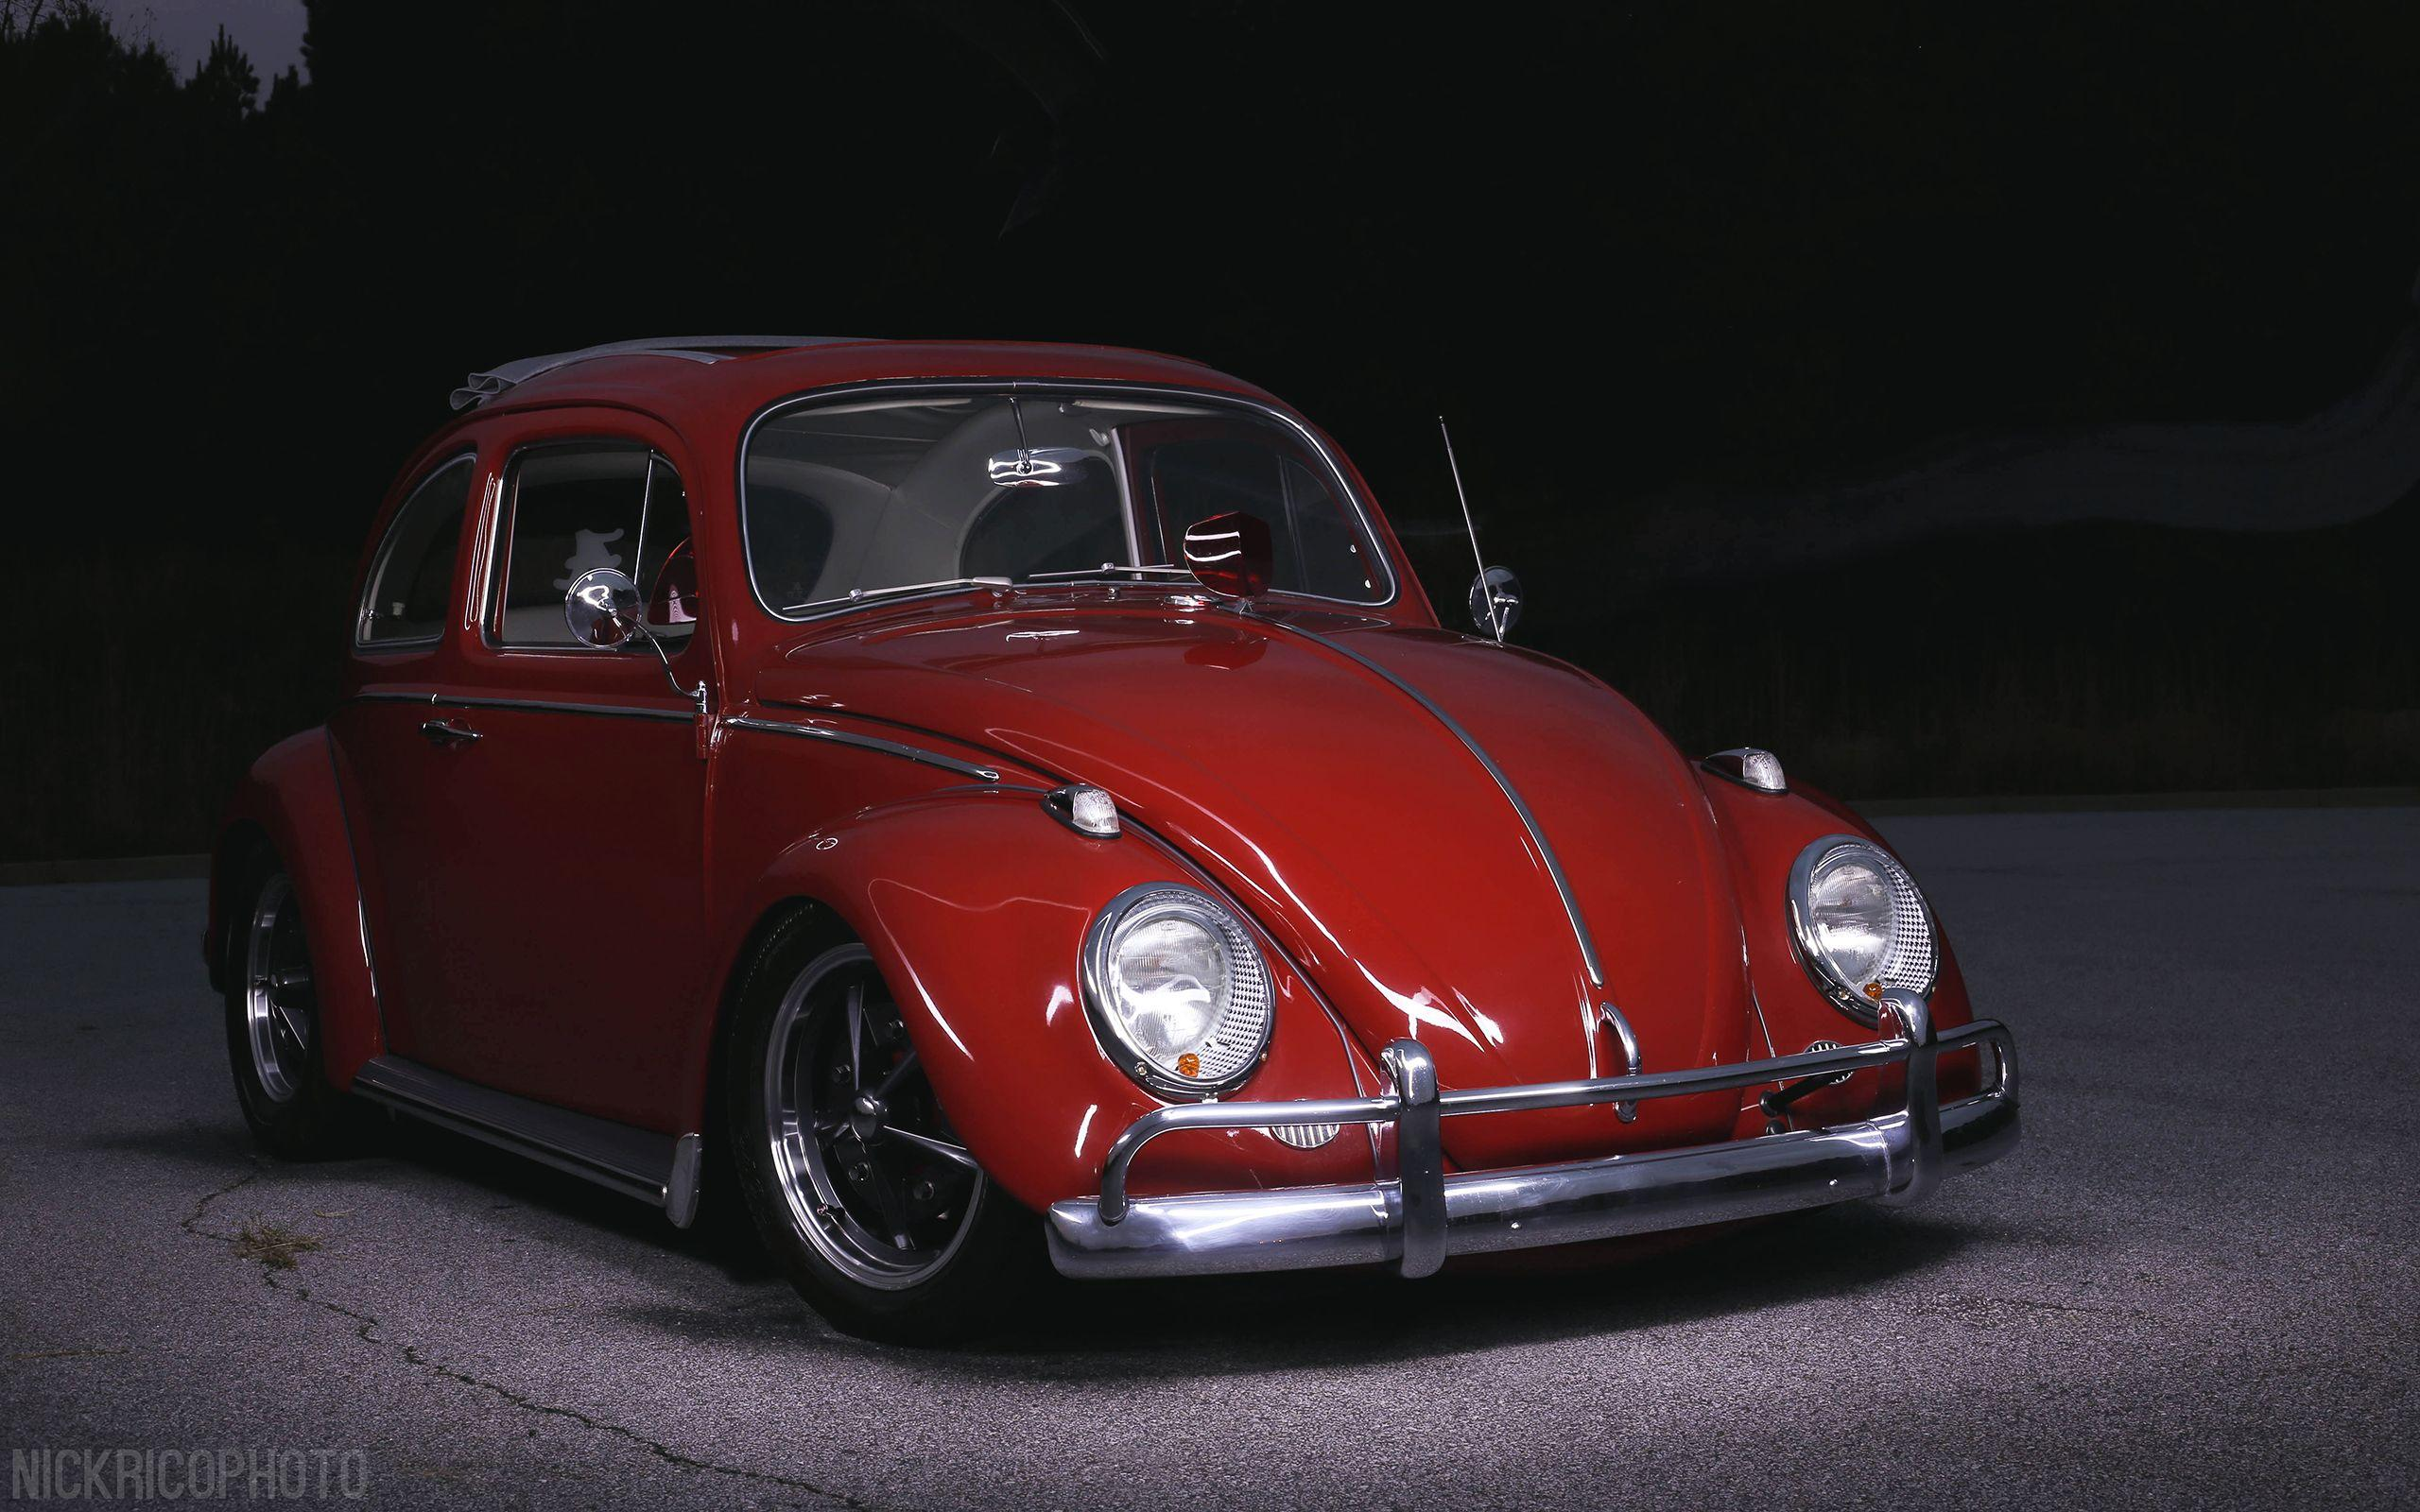 Vw Beetle Wallpapers